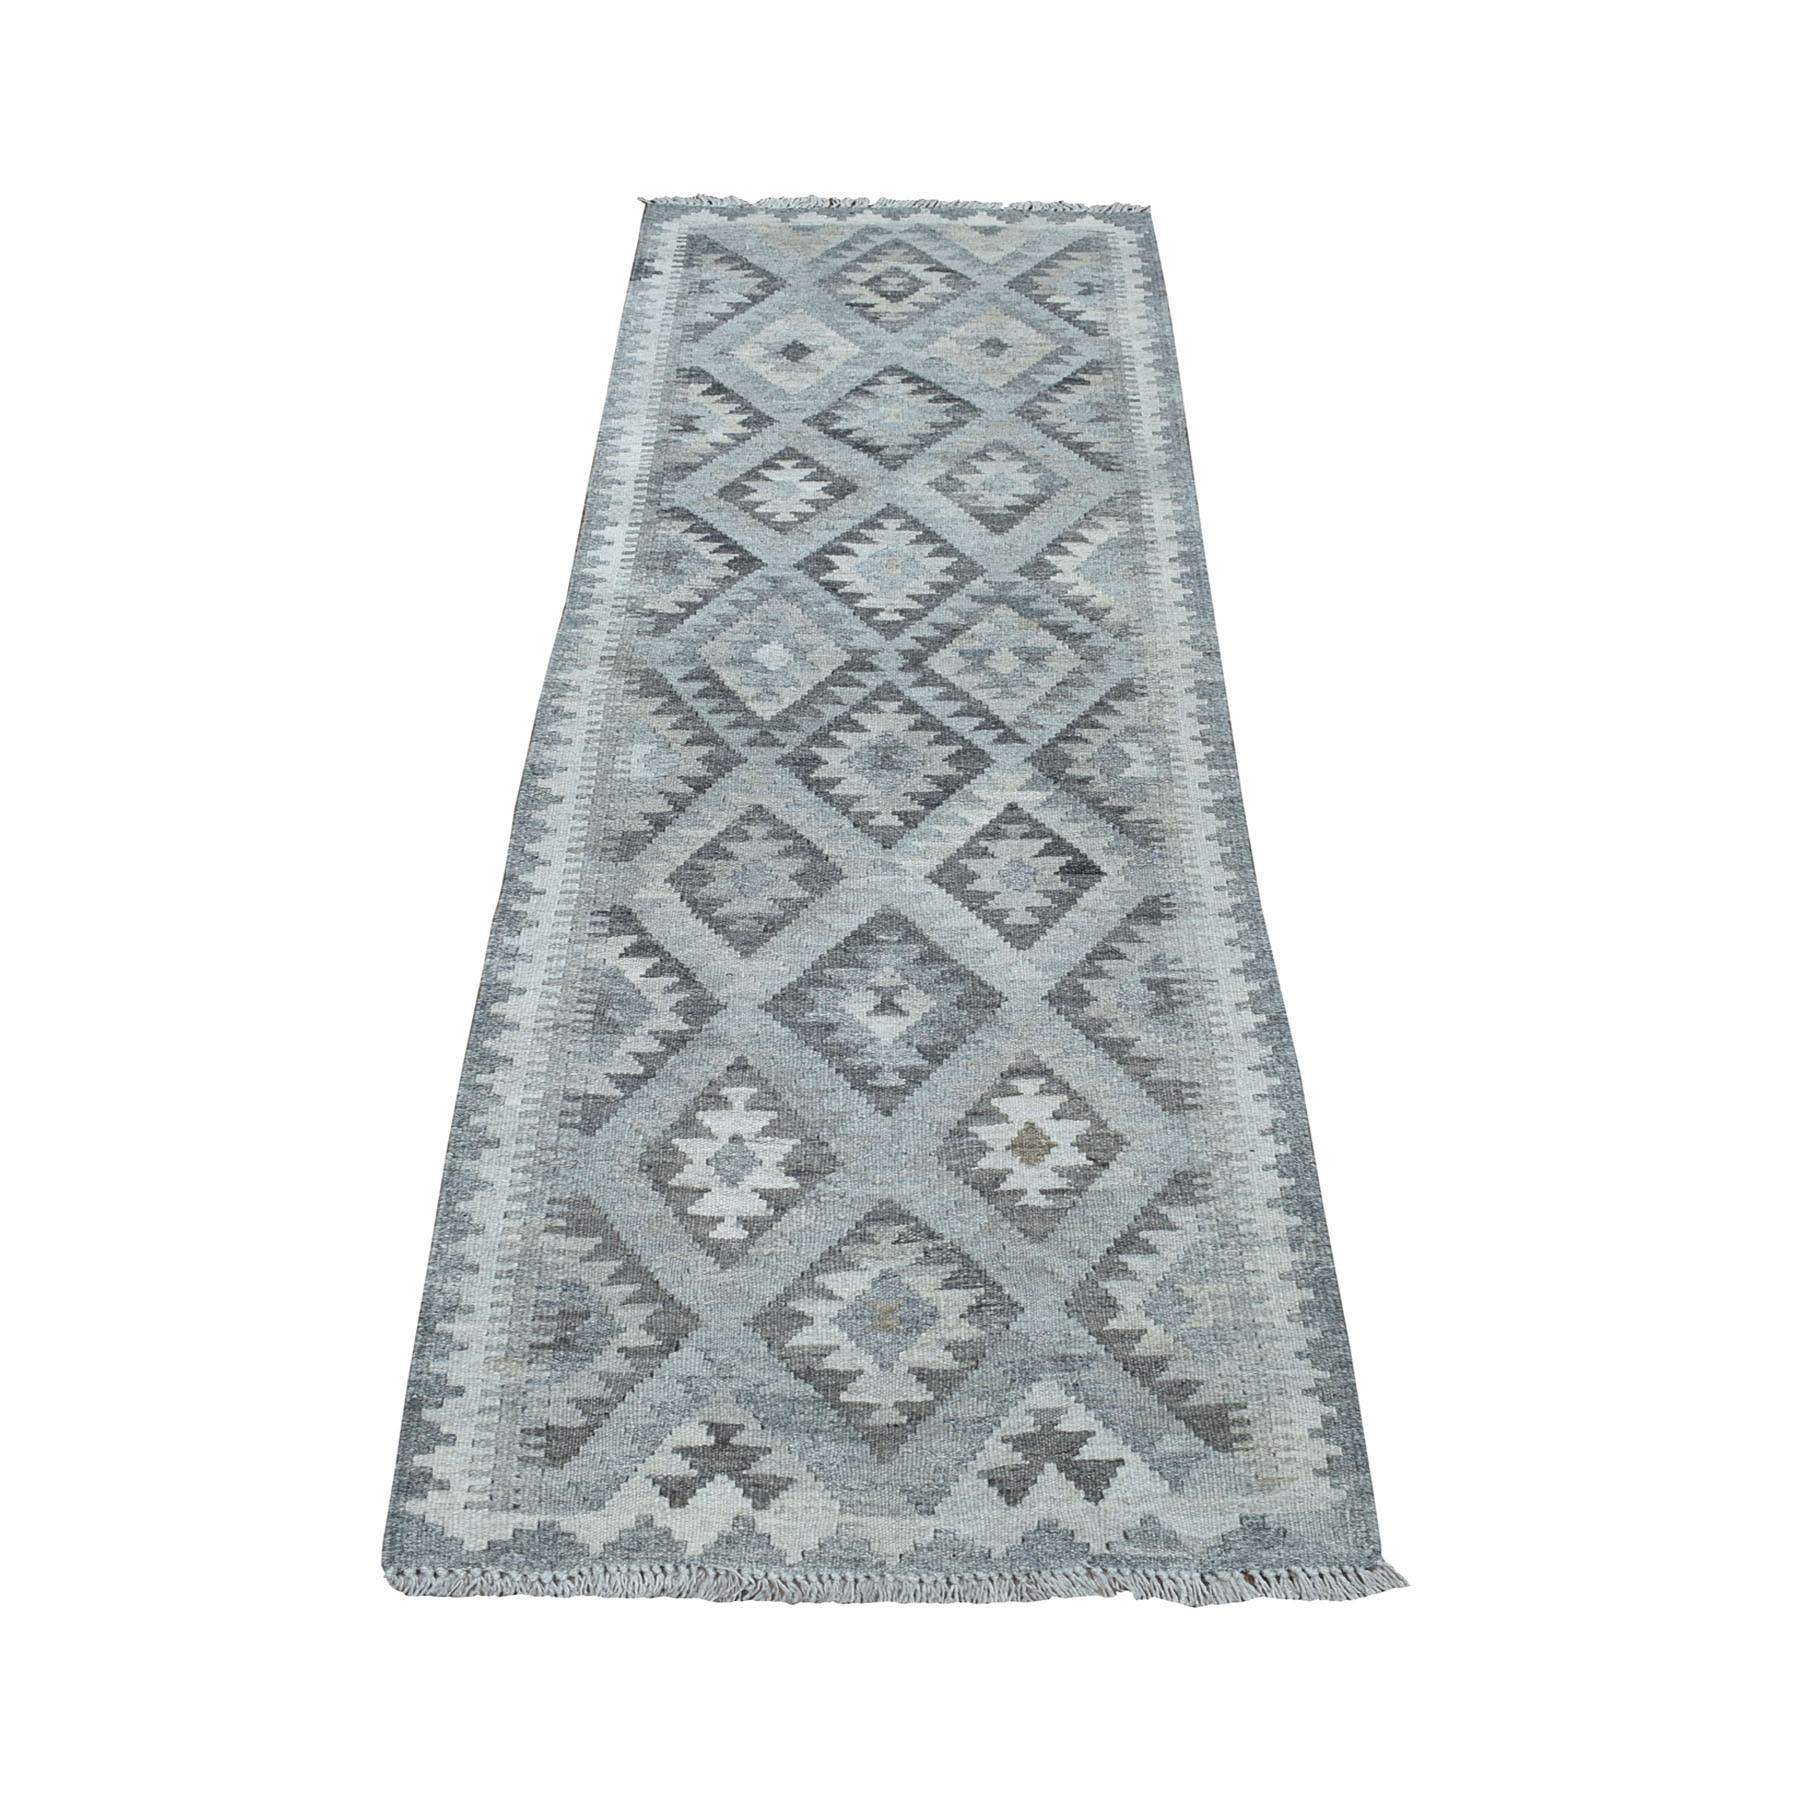 """2'2""""X6'5"""" Undyed Natural Wool Afghan Kilim Reversible Hand Woven Runner Oriental Rug moaecd60"""